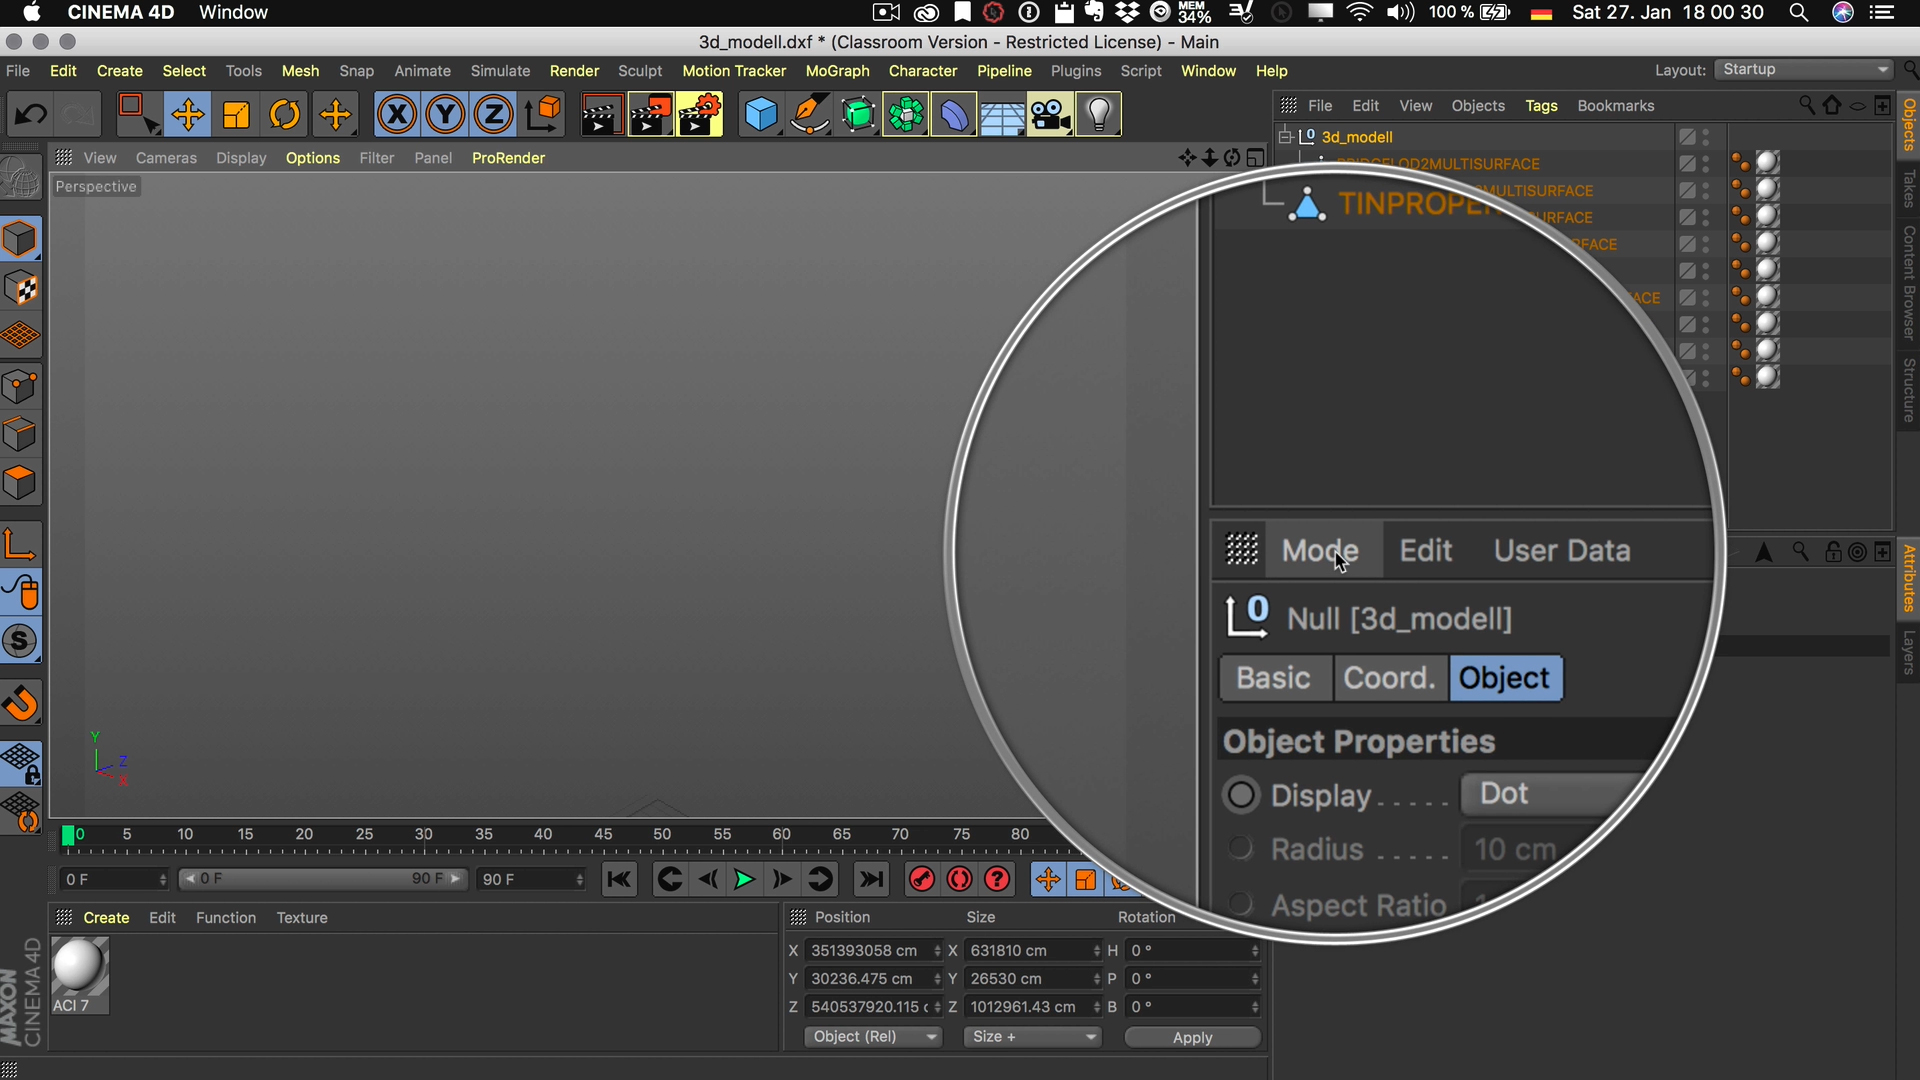 Cinema4D 3D-Stadtmodell Attribut Manager Modus